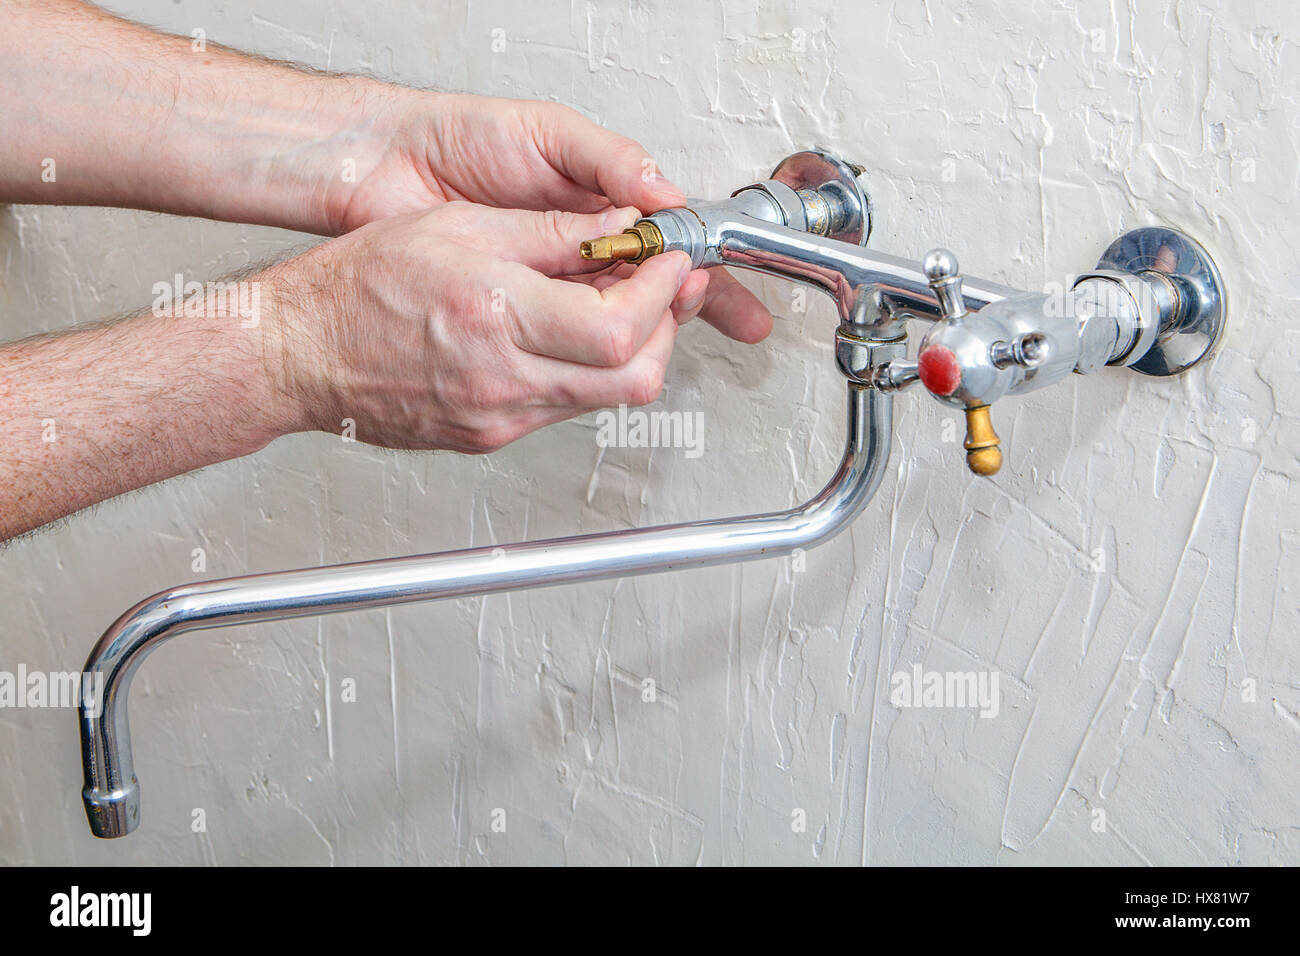 Plumber fixing water tap with leaking water, double handle kitchen ...